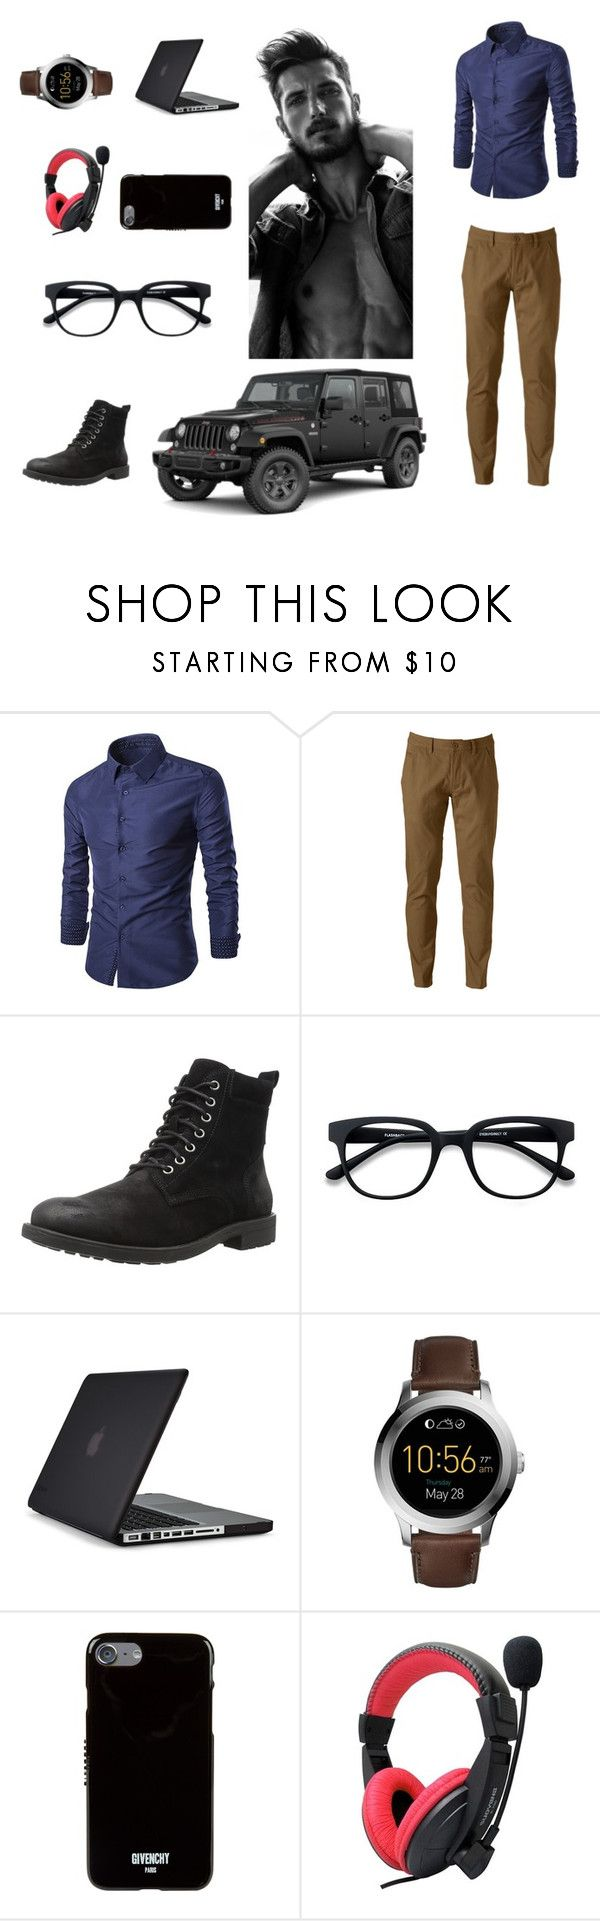 """Hacker, works for FBI"" by mtorres-i ❤ liked on Polyvore featuring Hollywood the Jean People, EyeBuyDirect.com, Speck, FOSSIL, Givenchy, Wrangler, men's fashion and menswear"